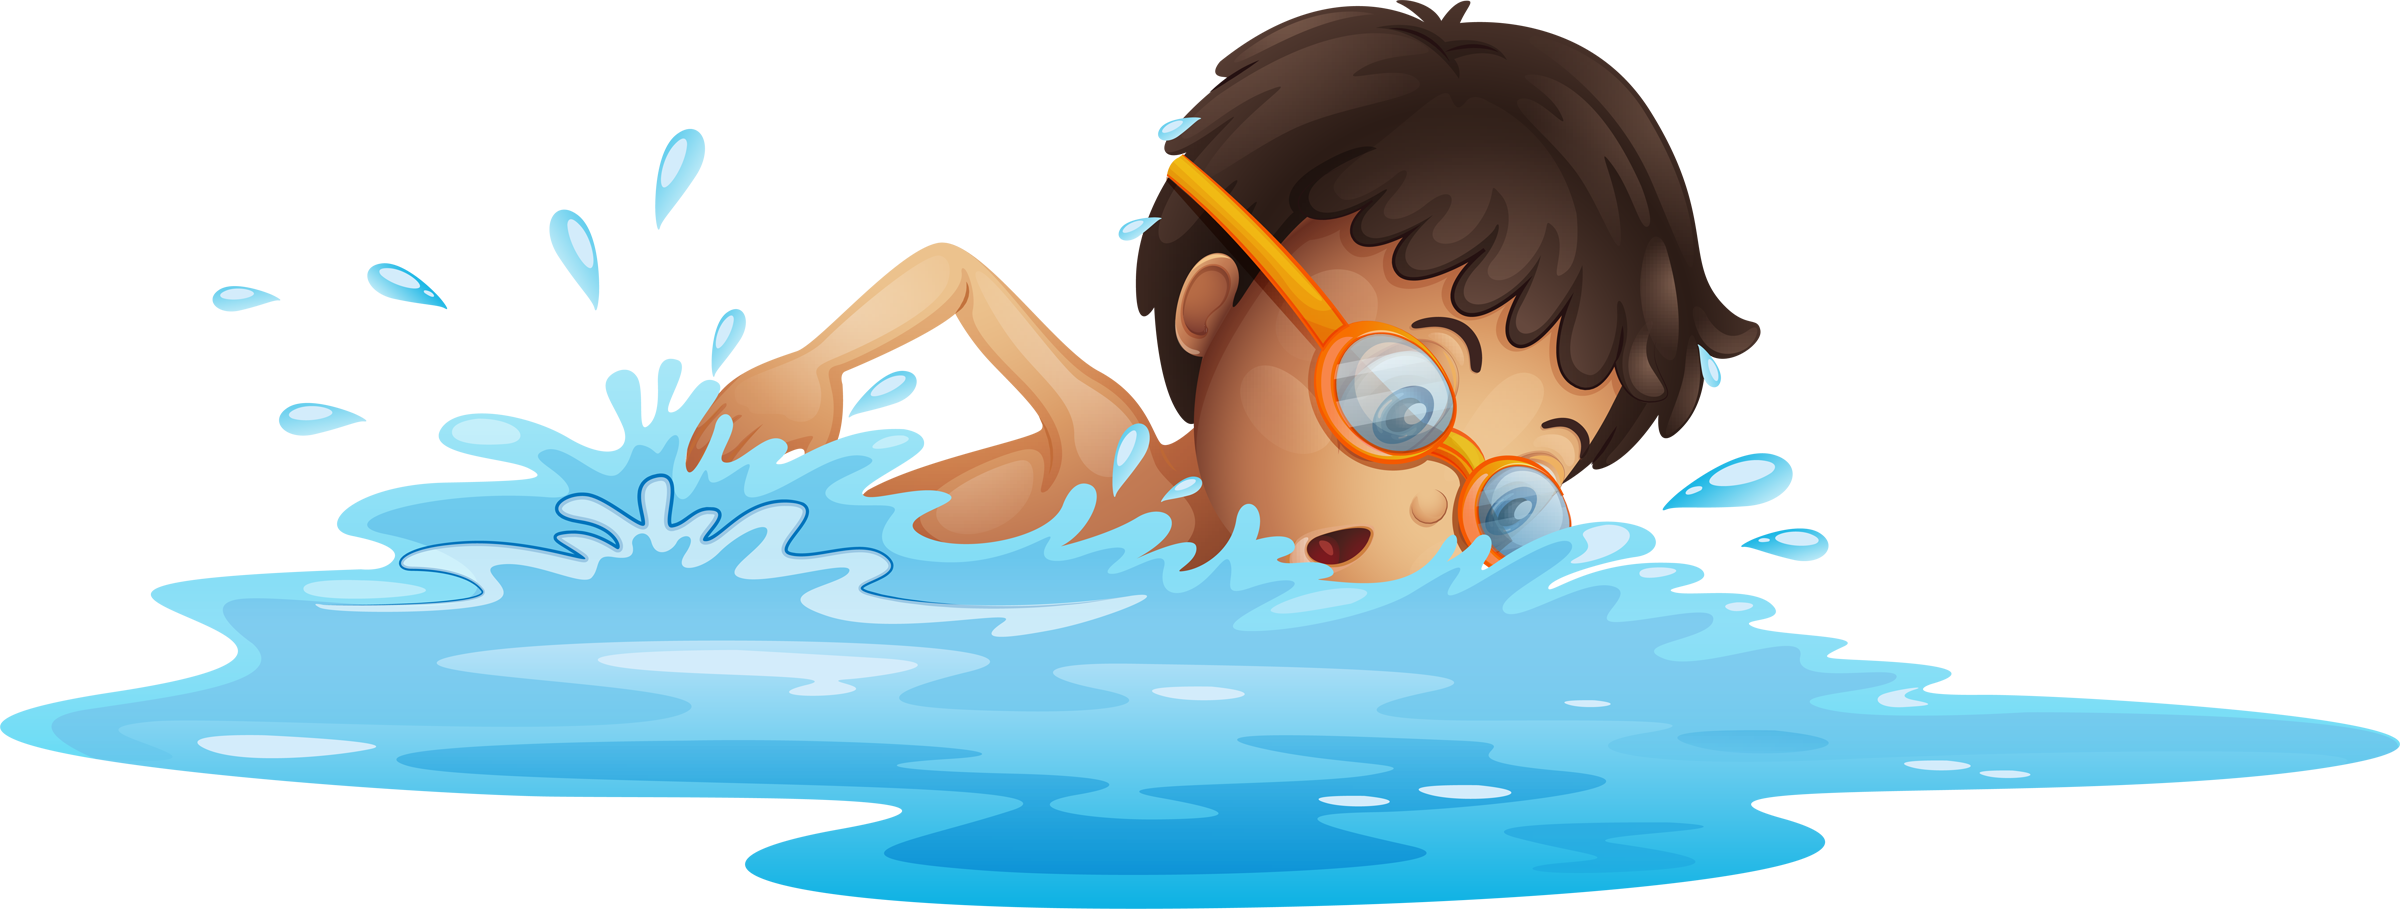 Swimming clipart png. Clip art images pic